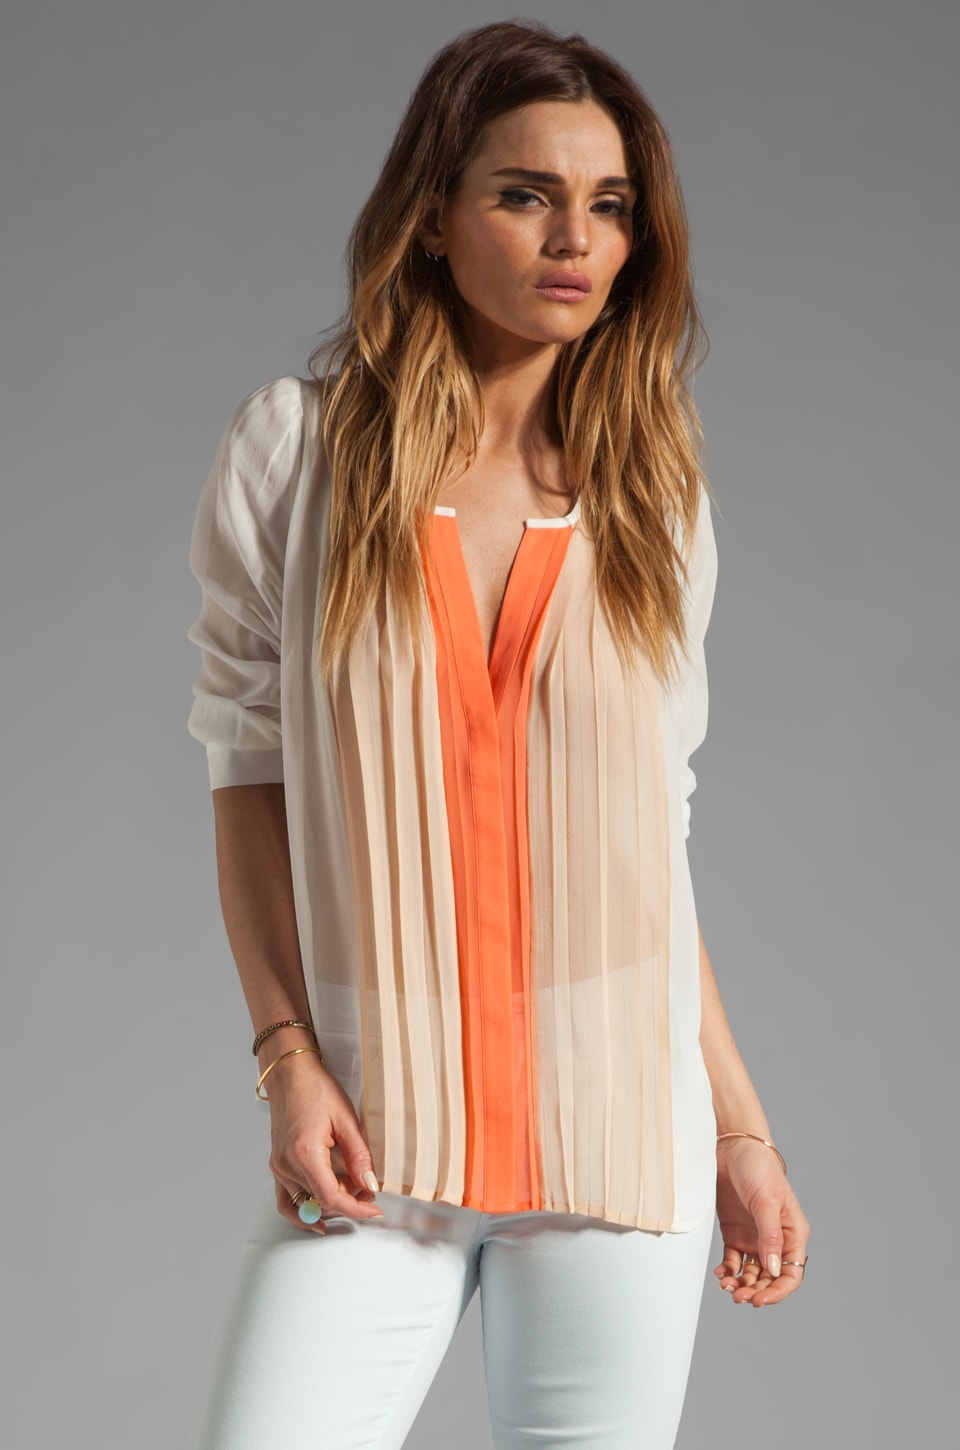 Joie Sinden Ombre Blouse in Hot Coral/Dusty Pink Sand/Porcelain